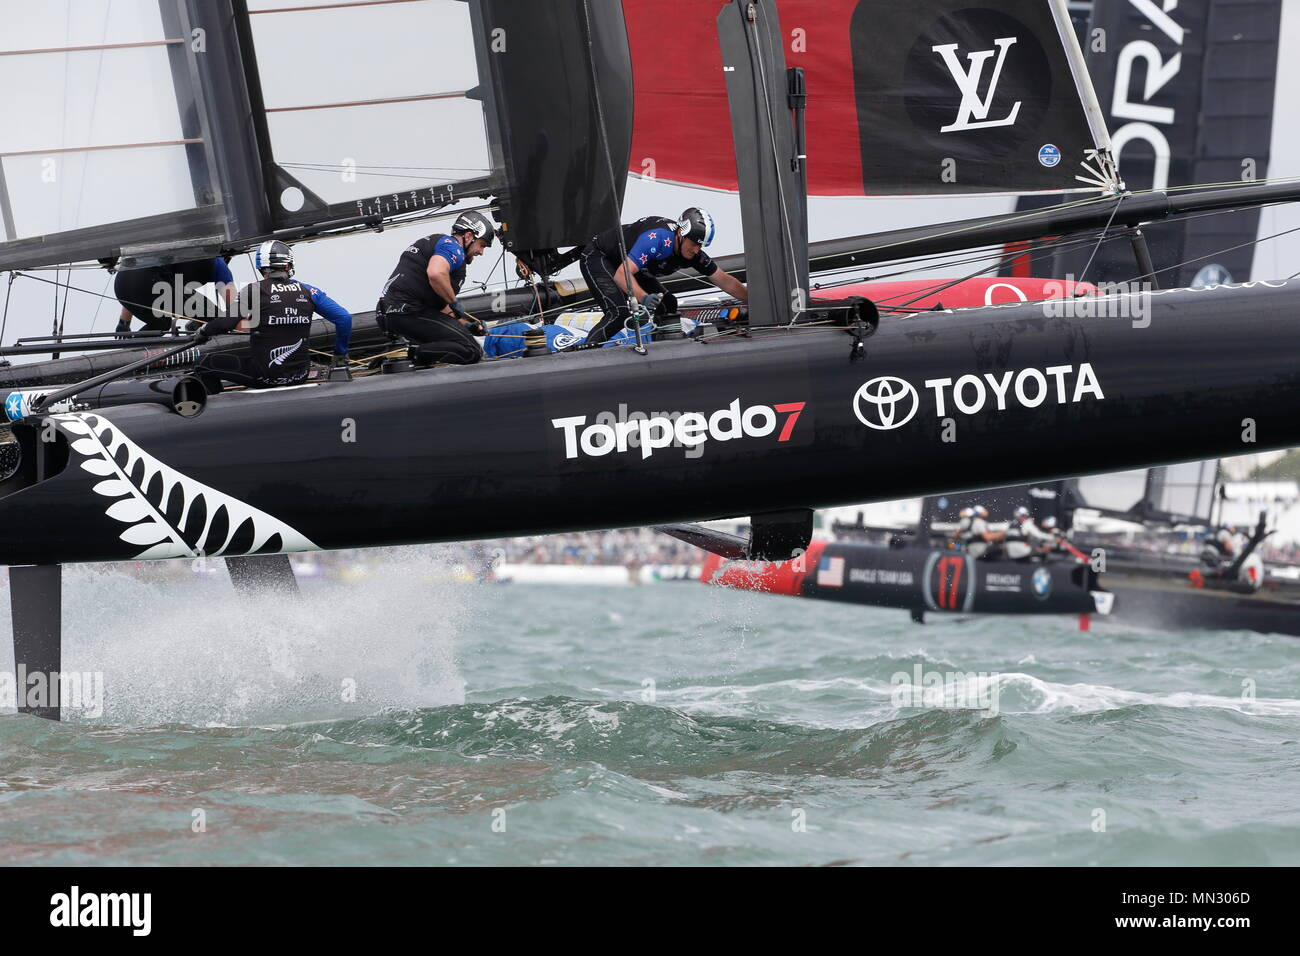 PORTSMOUTH, ENGLAND - JULY 24: Emirates Team New Zealand yacht takes flight in race trim on July 24, 2016 in Portsmouth, England. - Stock Image